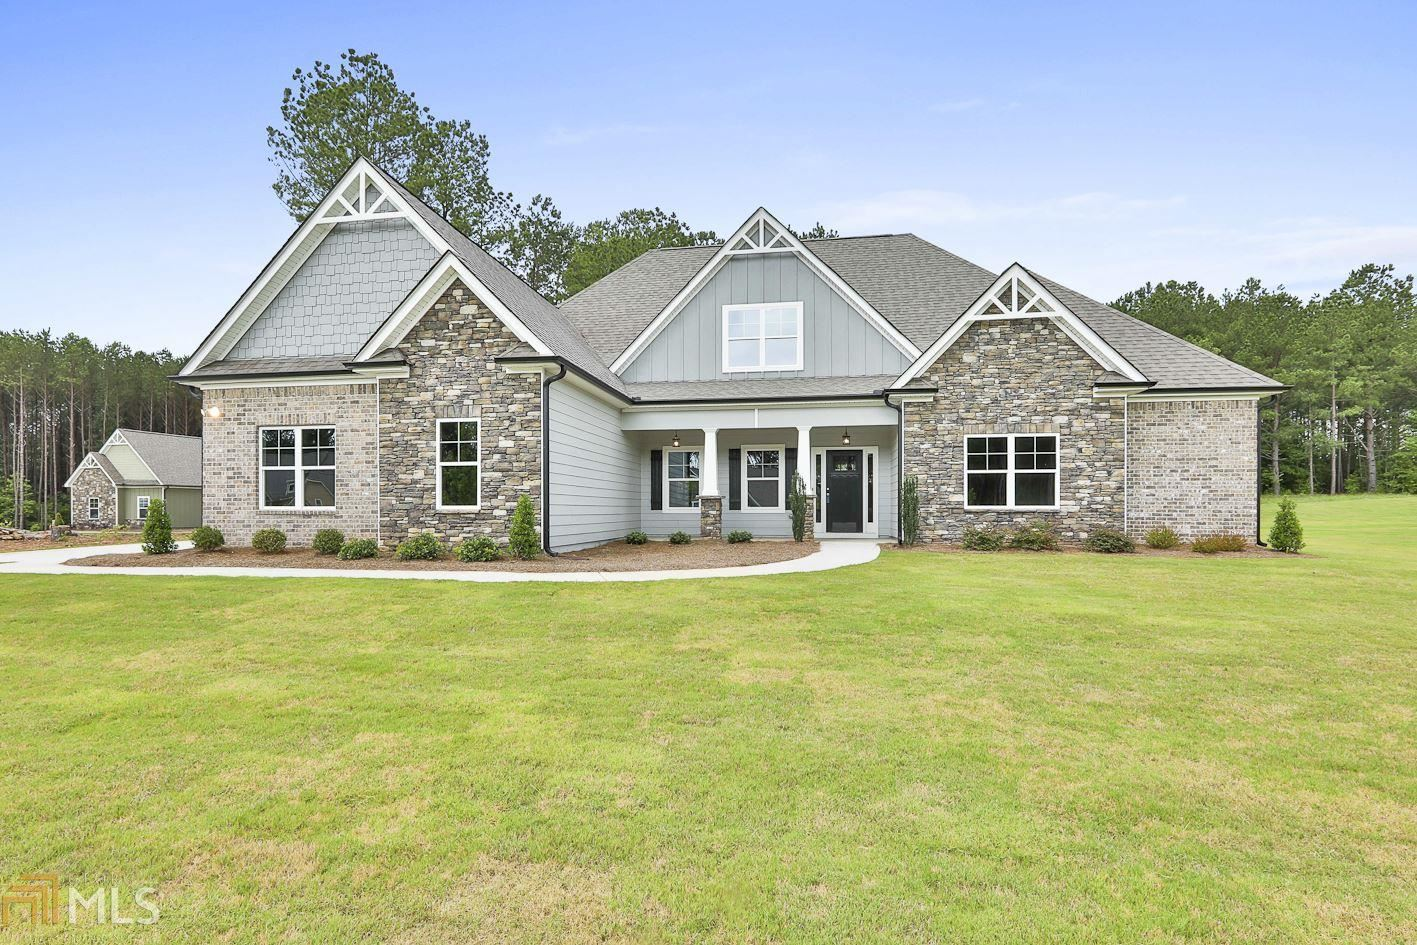 0 Crevest Ct, Sharpsburg, GA 30277 - MLS#: 8458587